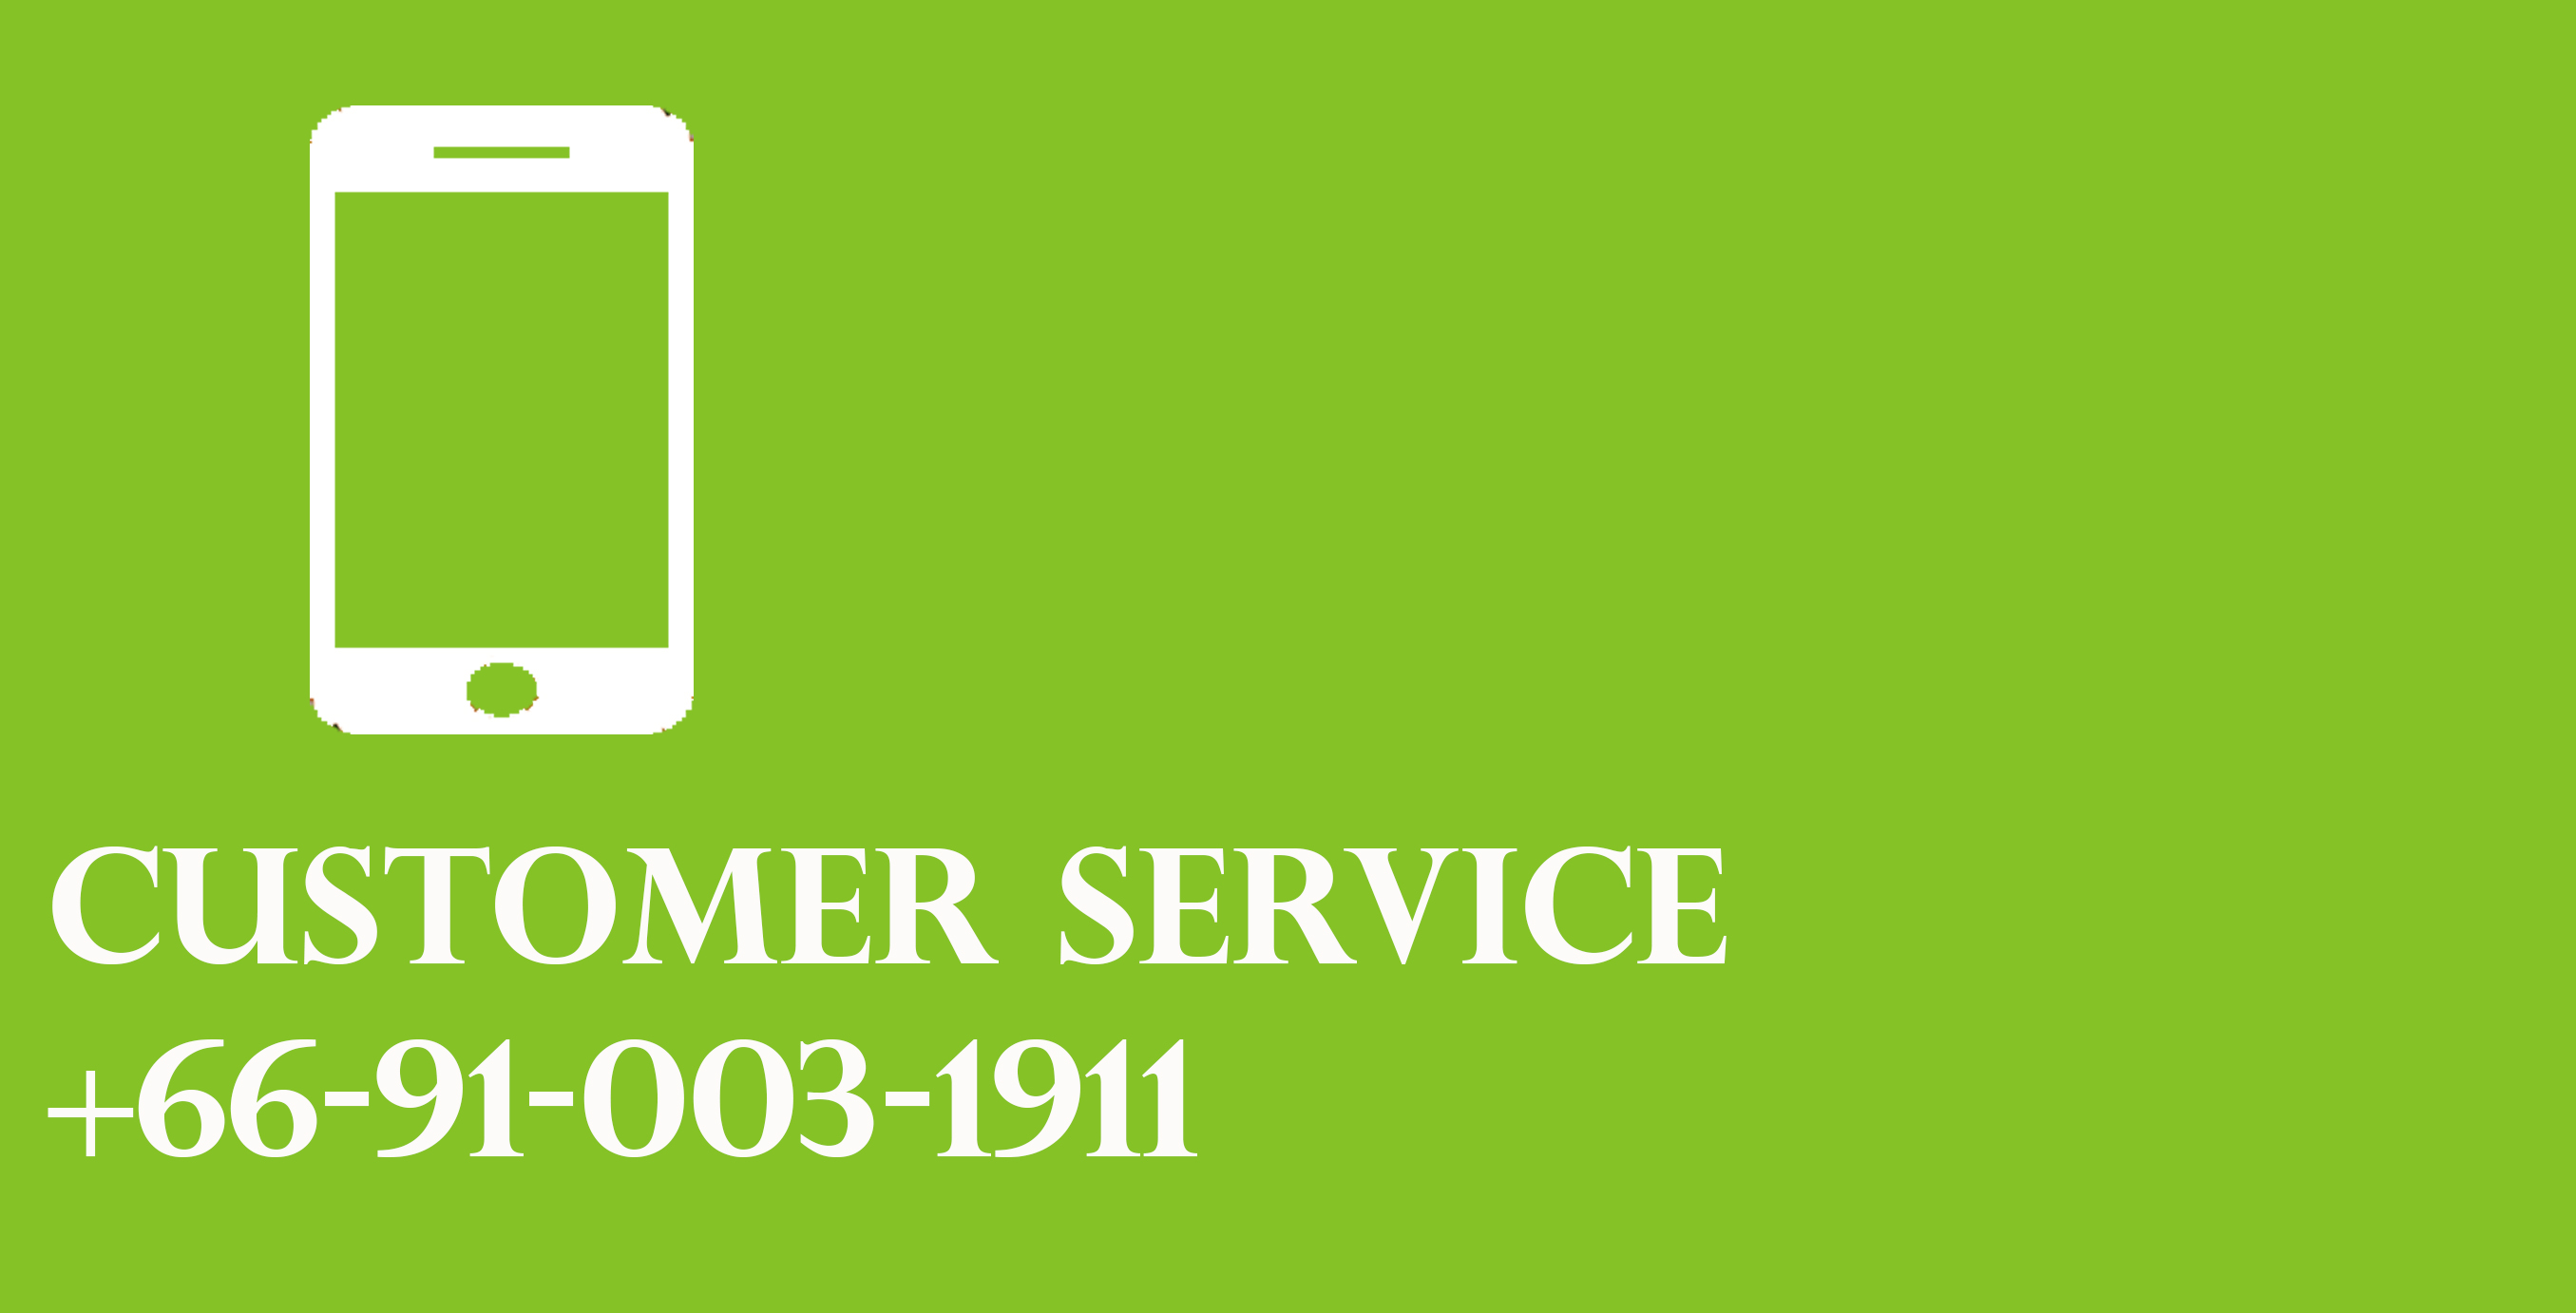 Customer-Service-number-interecom